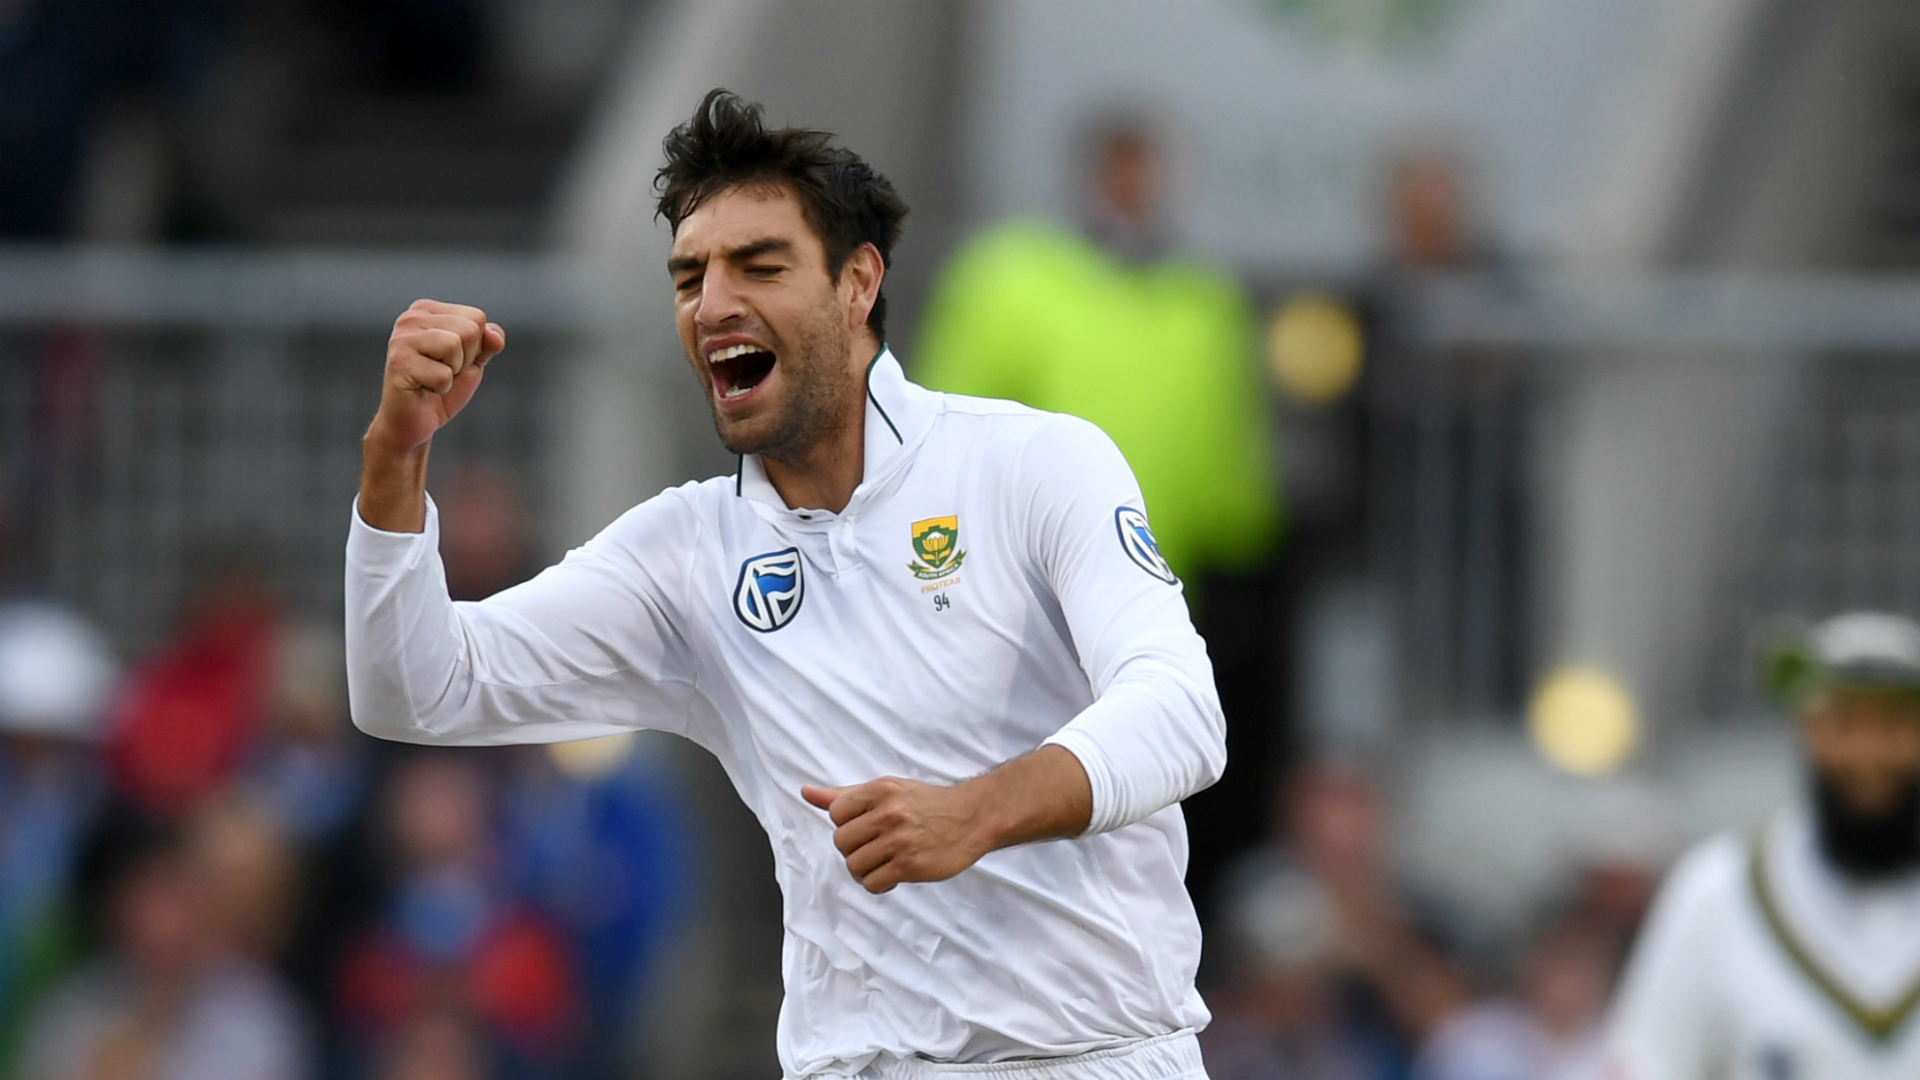 South Africa's bowler test ban appeal to be heard